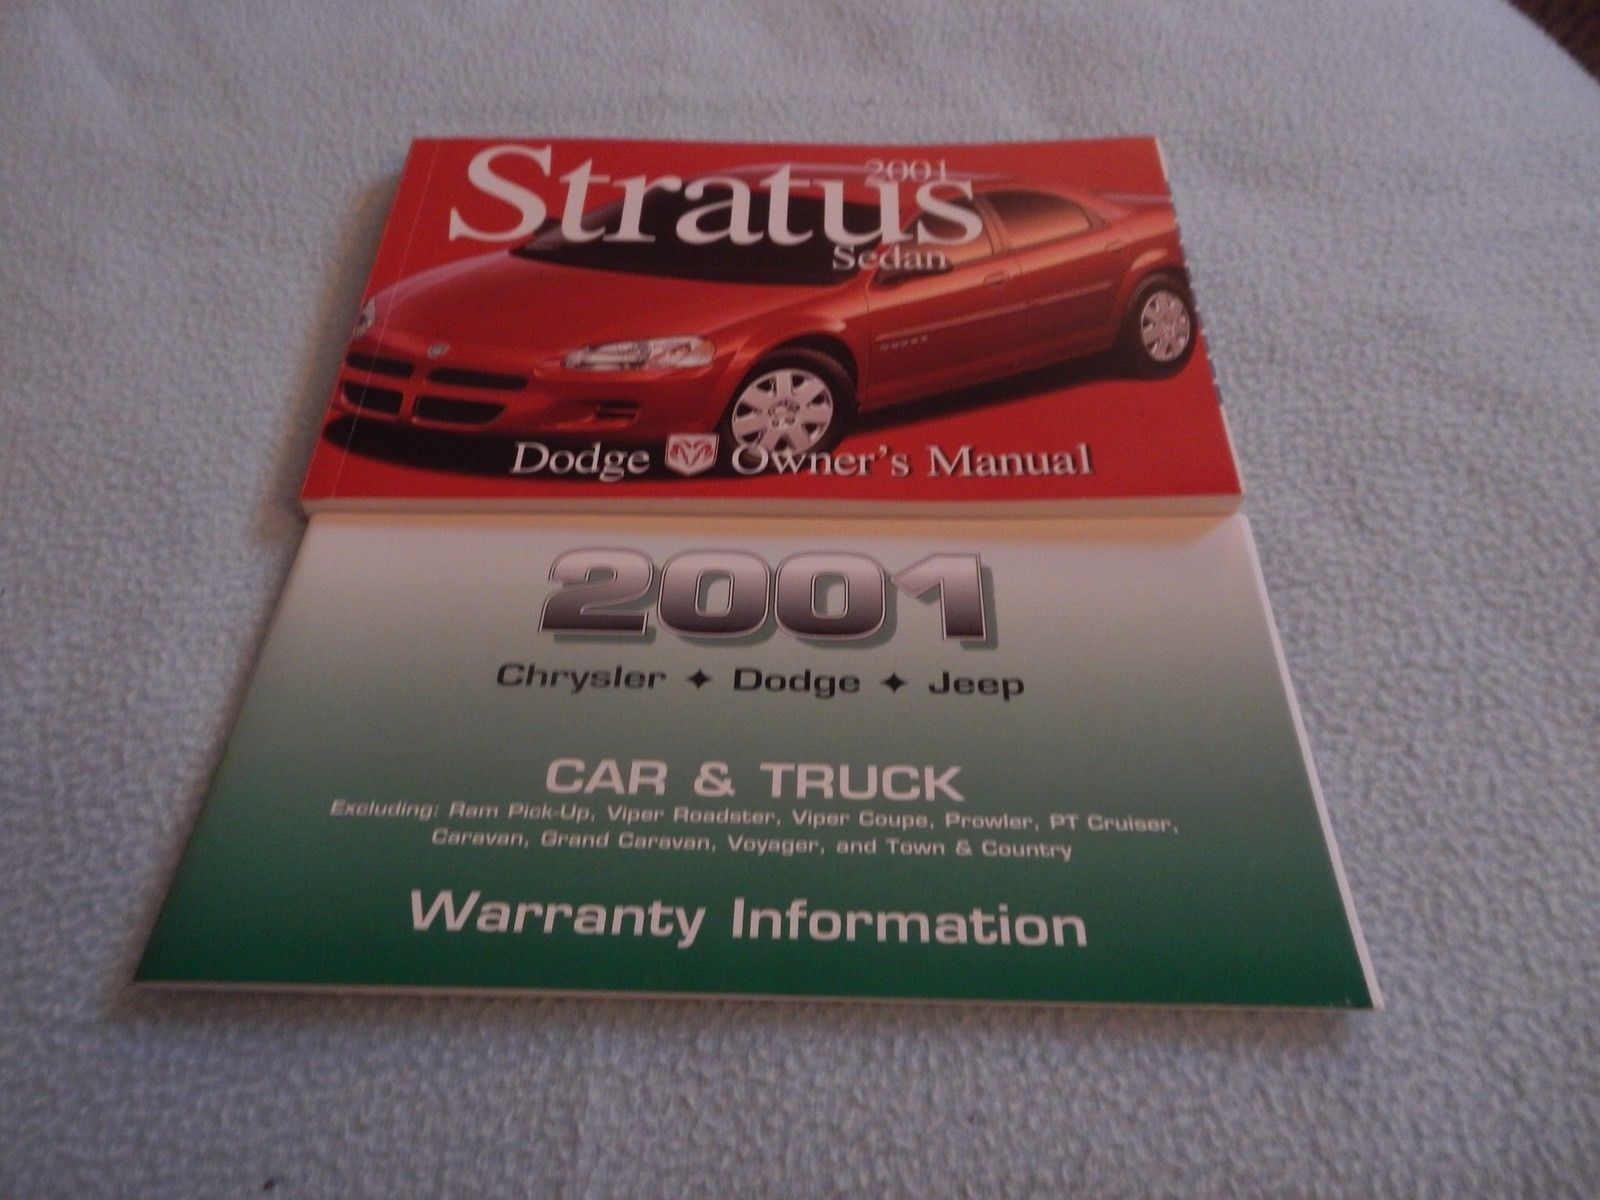 2001 Dodge Stratus Owners Manual With Binder